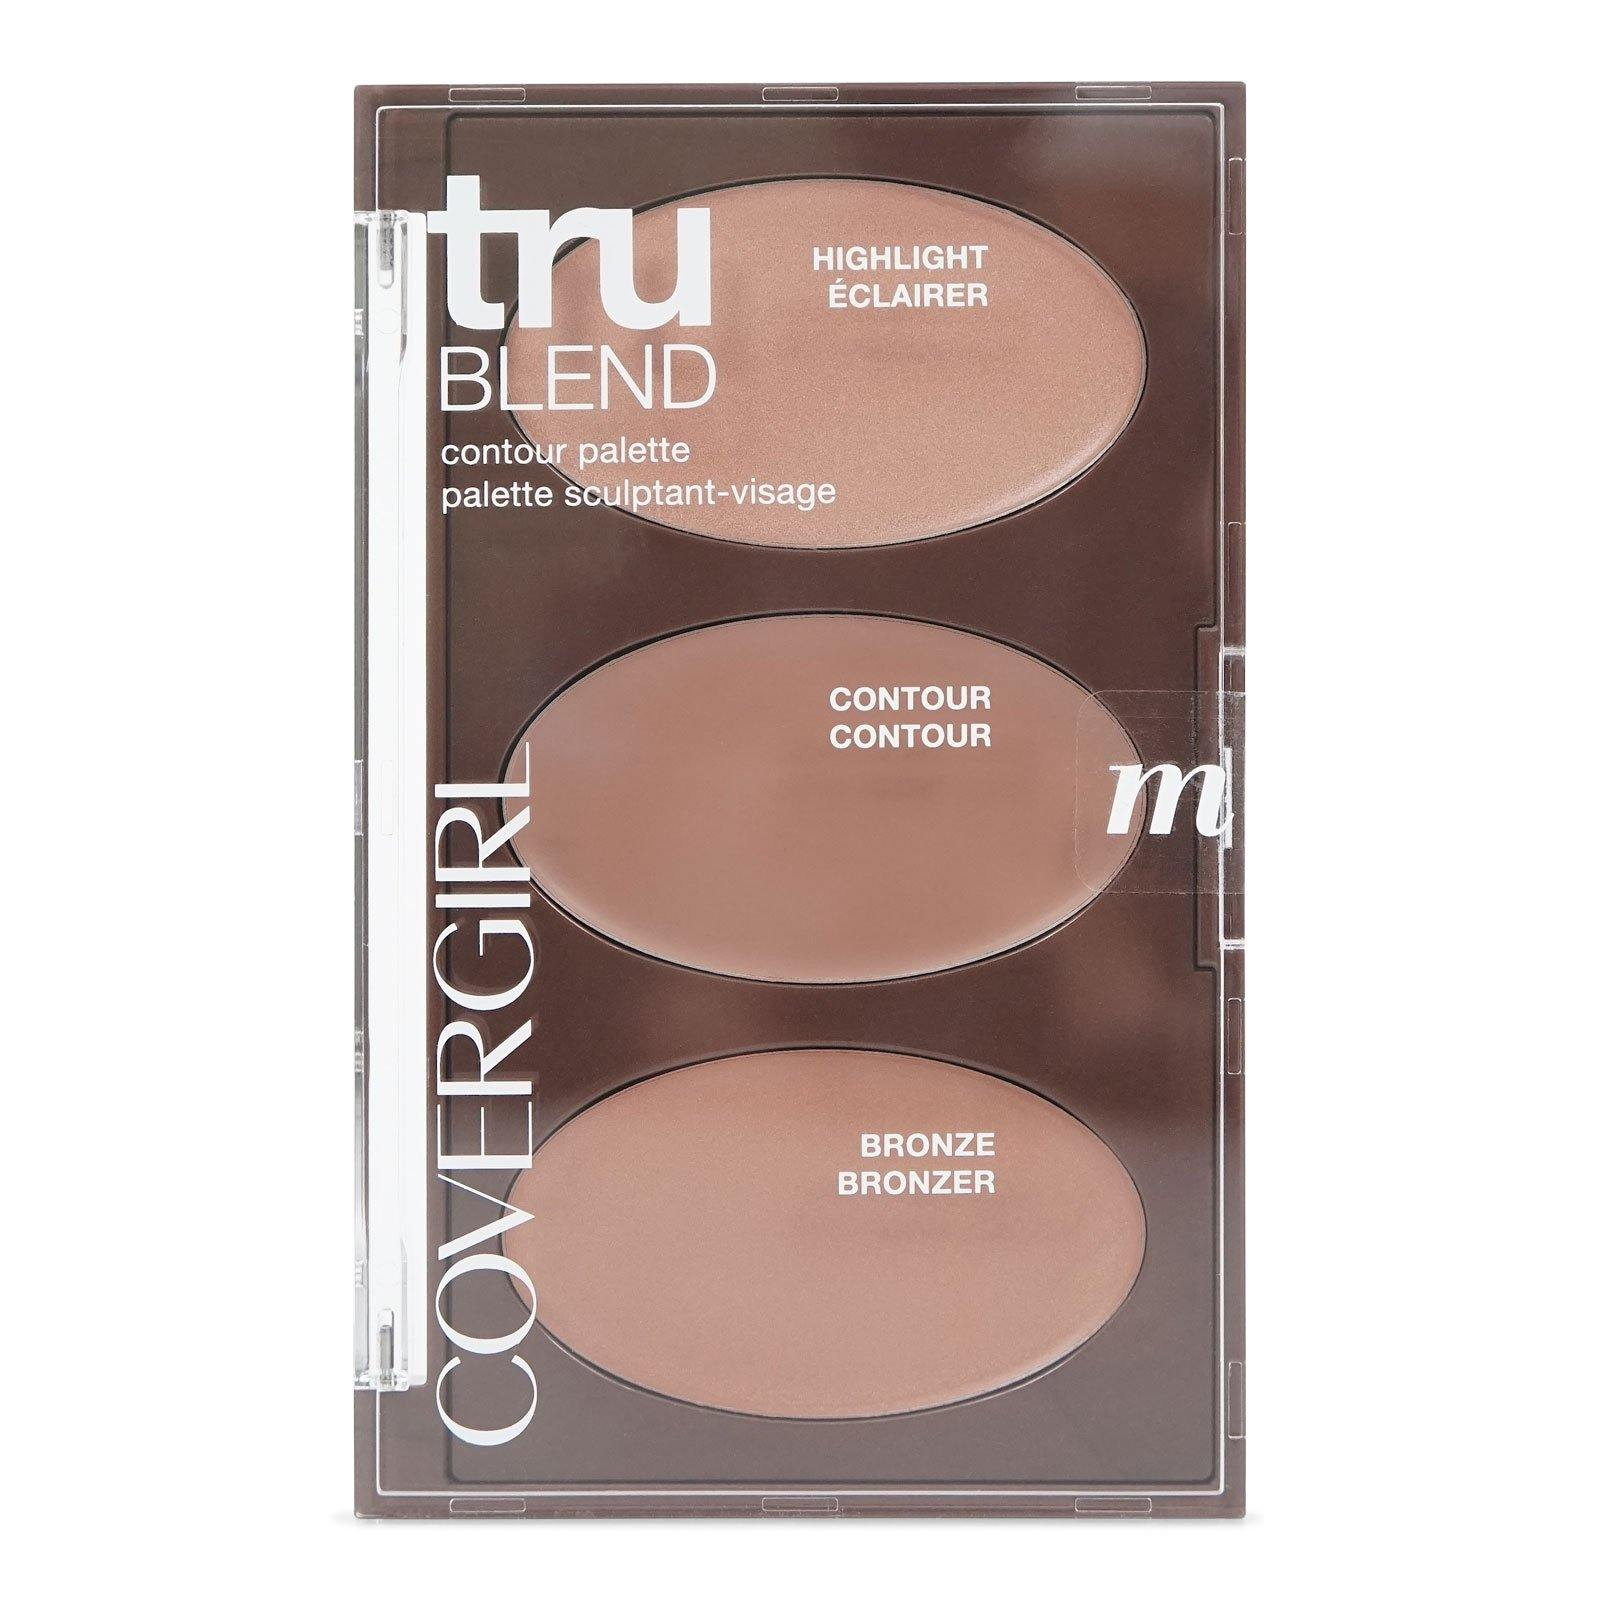 COVERGIRL TRUBLEND CONTOUR PALETTE - MEDIUM (12/cs)